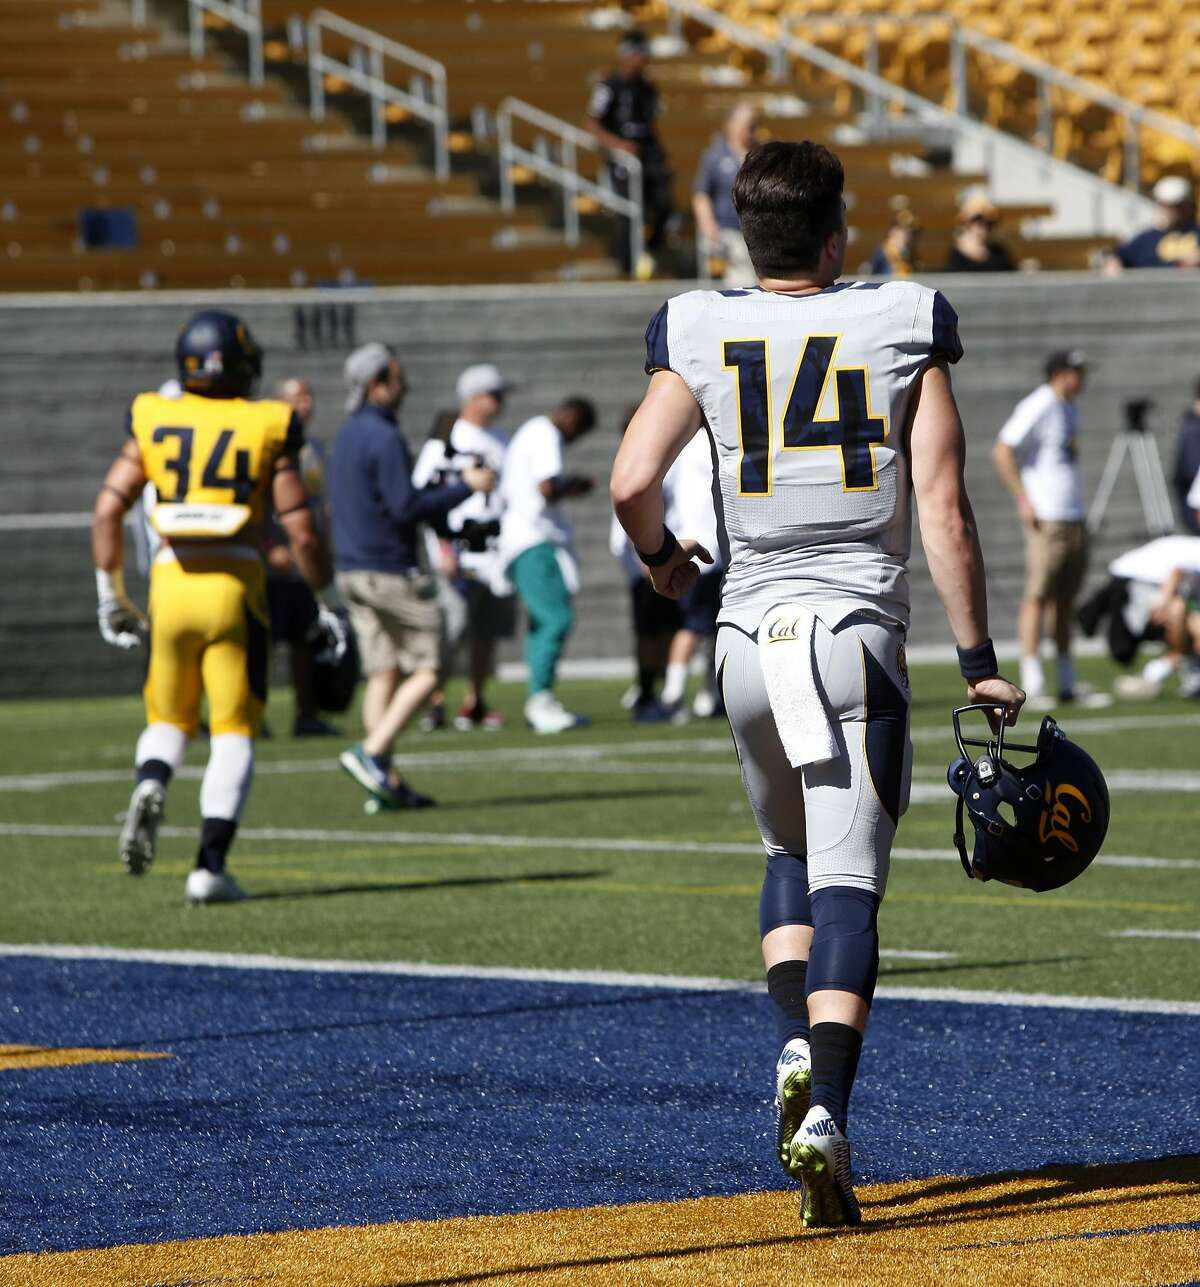 Quarterback Chase Forrest along with Fabiano Hale, #34, run on to the field with their helmets before UC Berkeley's Cal Football Spring Scrimmage in Berkeley on April 16, 2016